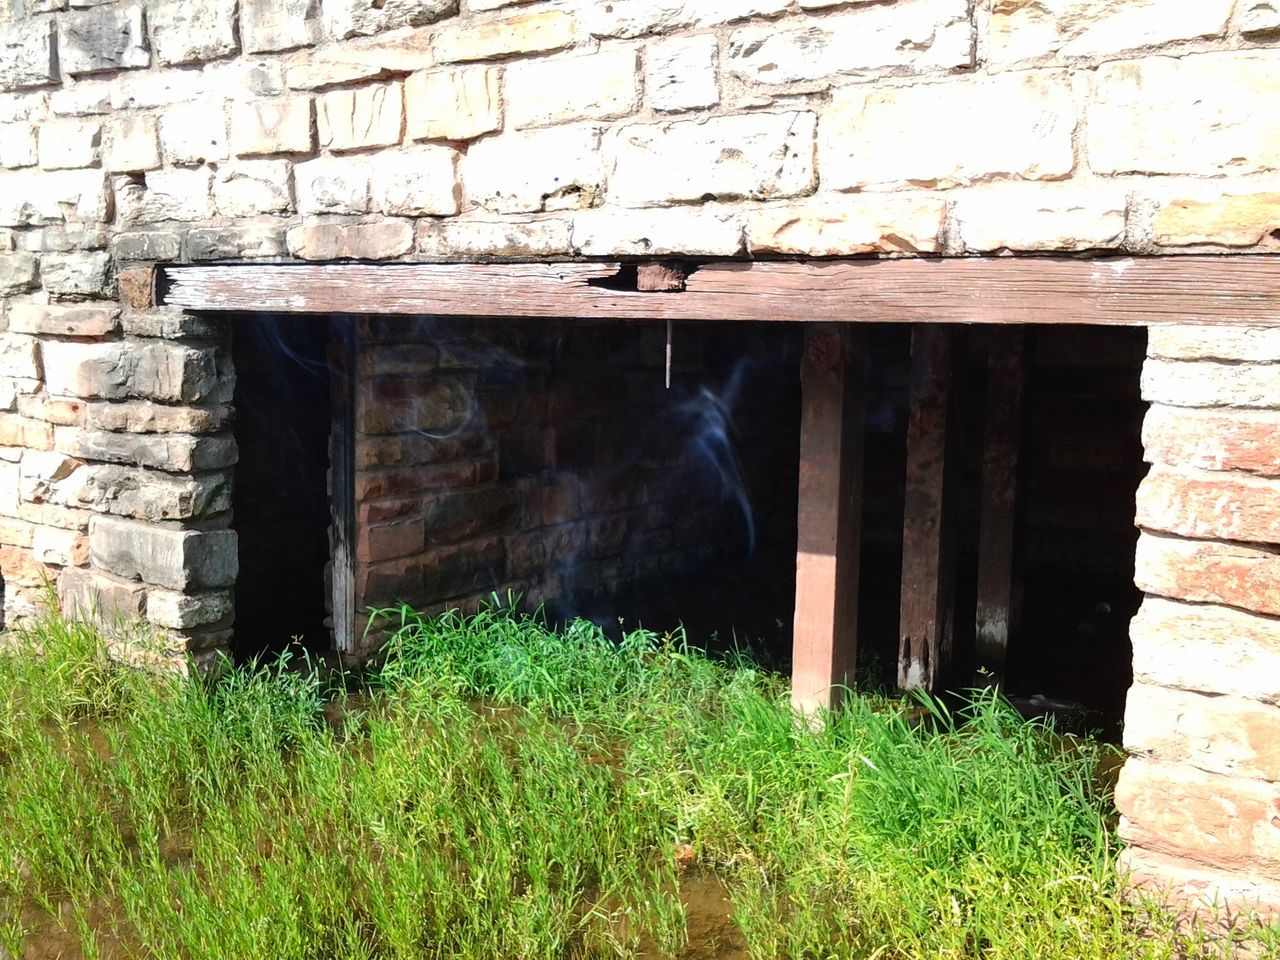 Ghost i captured at the lake Outdoors No People Day Grass Building Exterior Built Structure Architecture bm Boathouse Boat Dock Tranquility Nature Old Boathouses Ghosts? Front View Ghosts